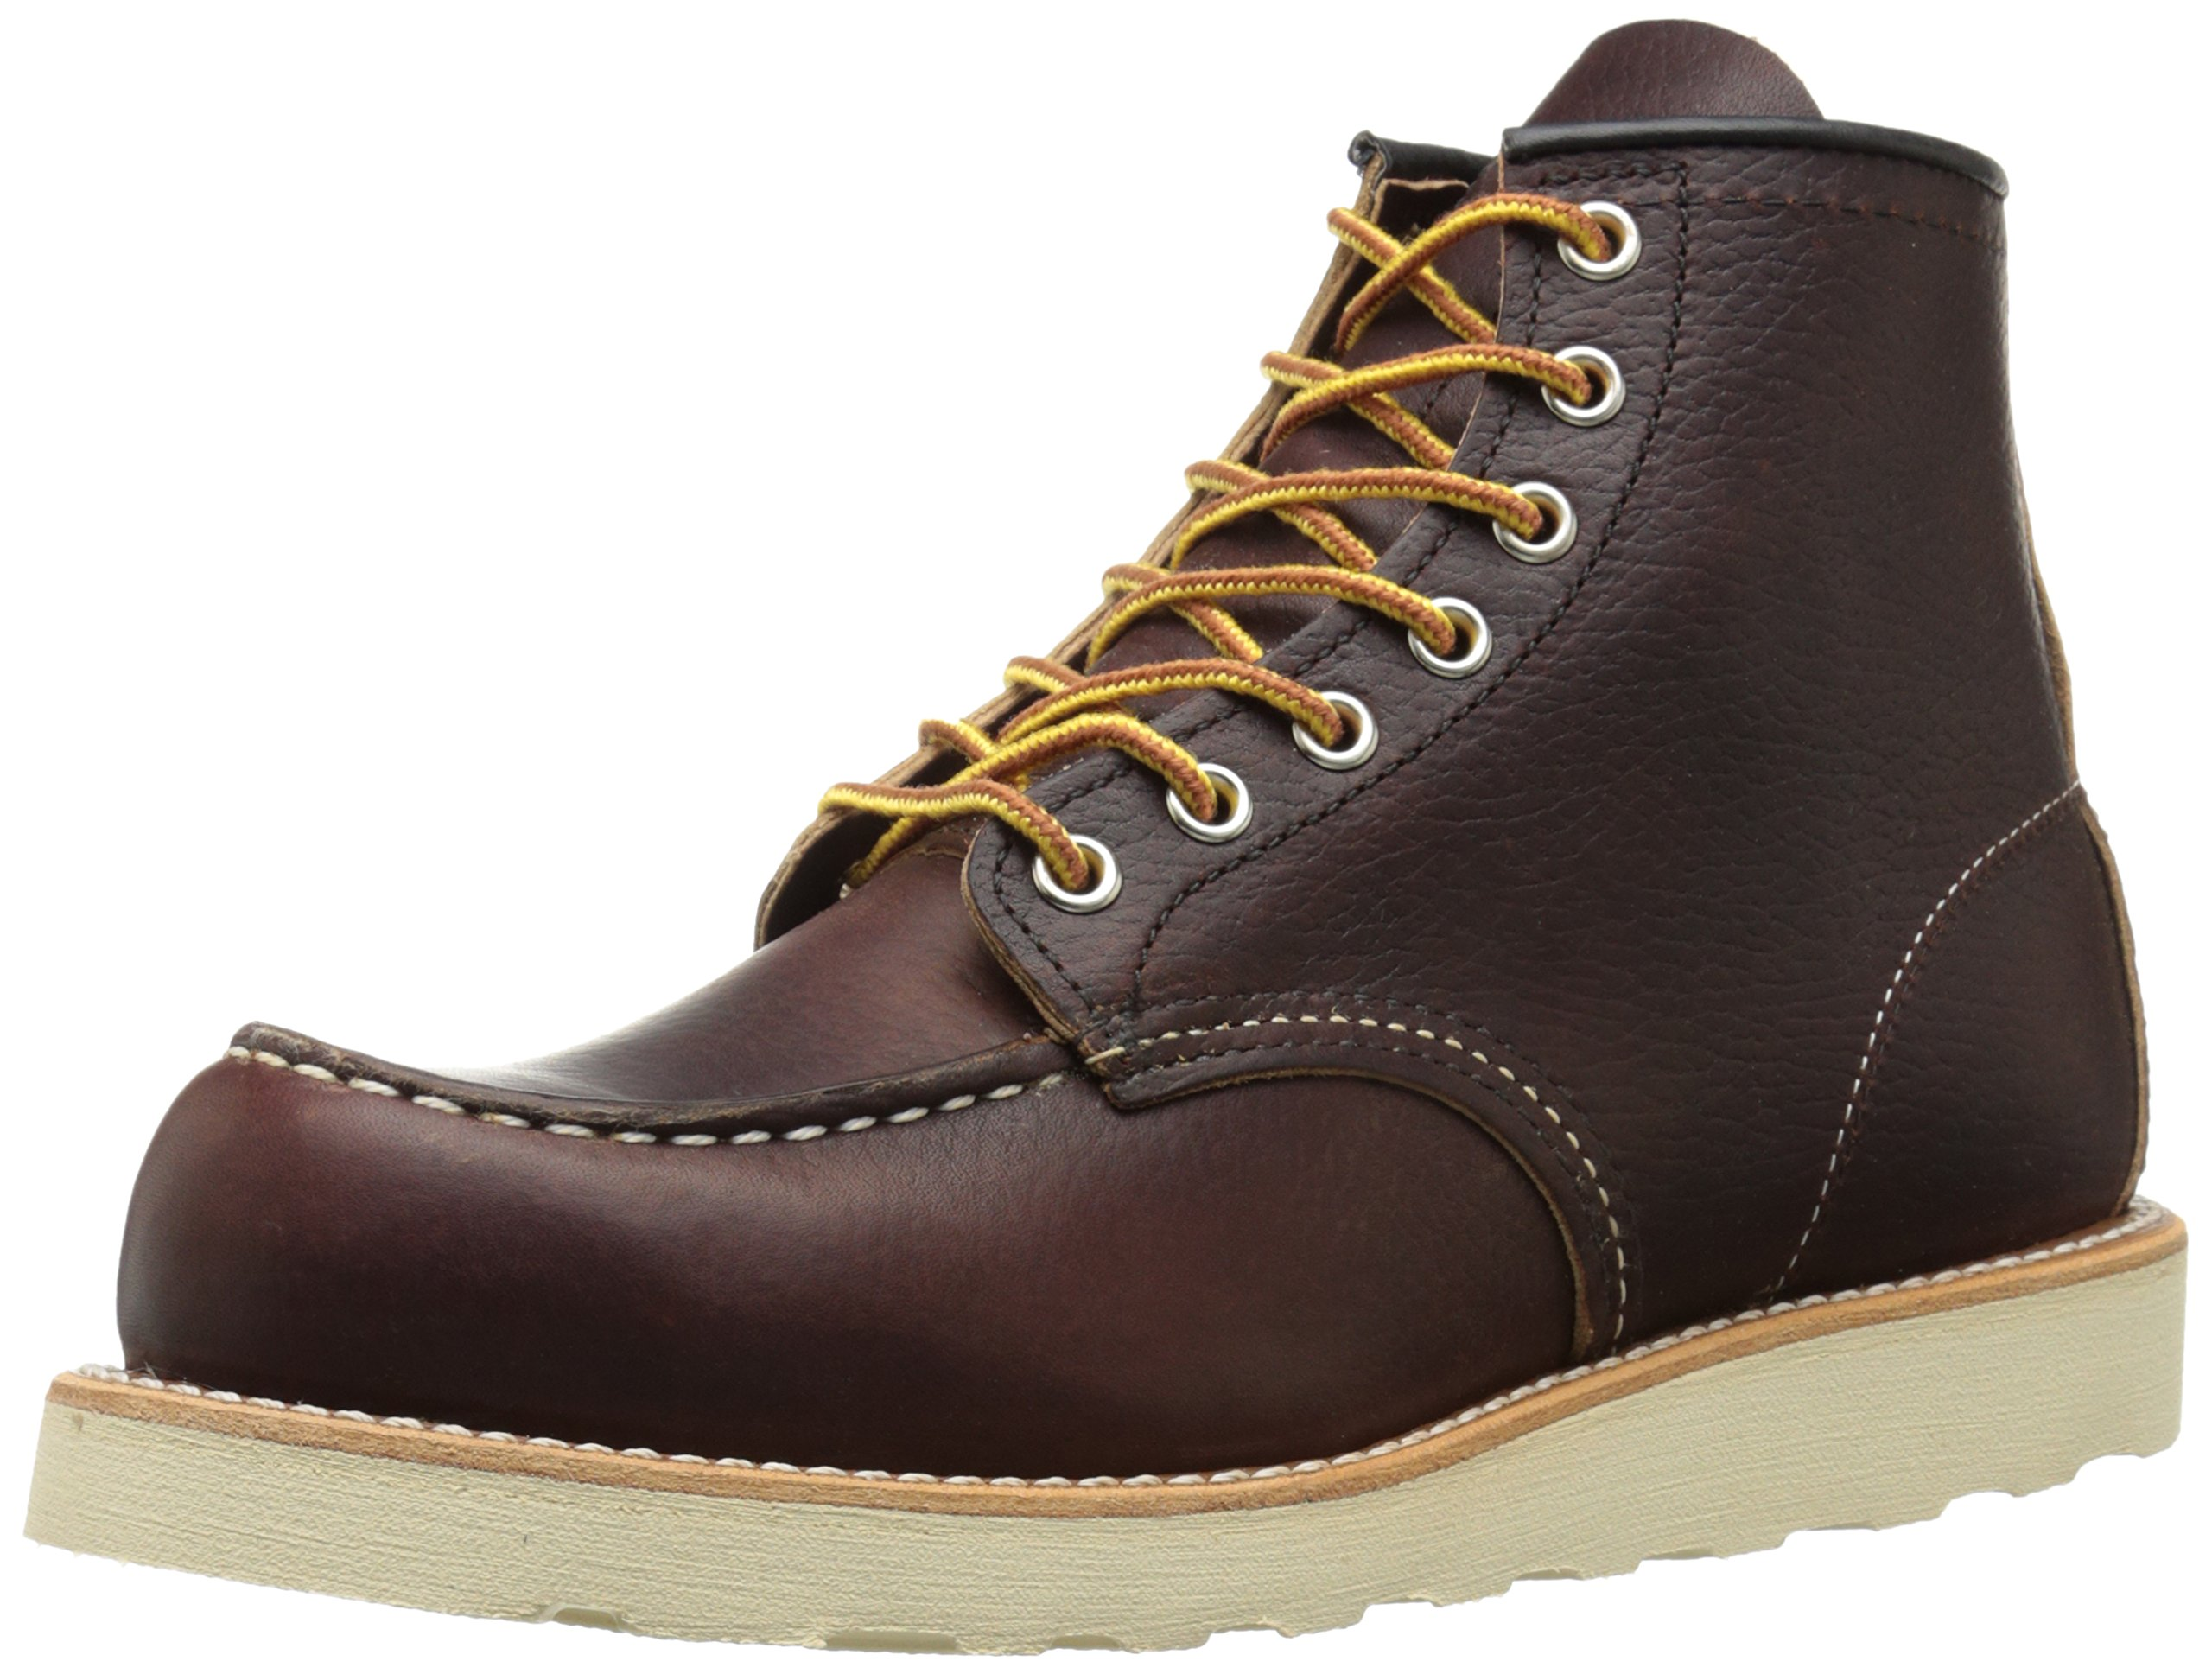 Red Wing Heritage Men's Classic Work 6-Inch Moc Toe Boot,Brown,8 D US